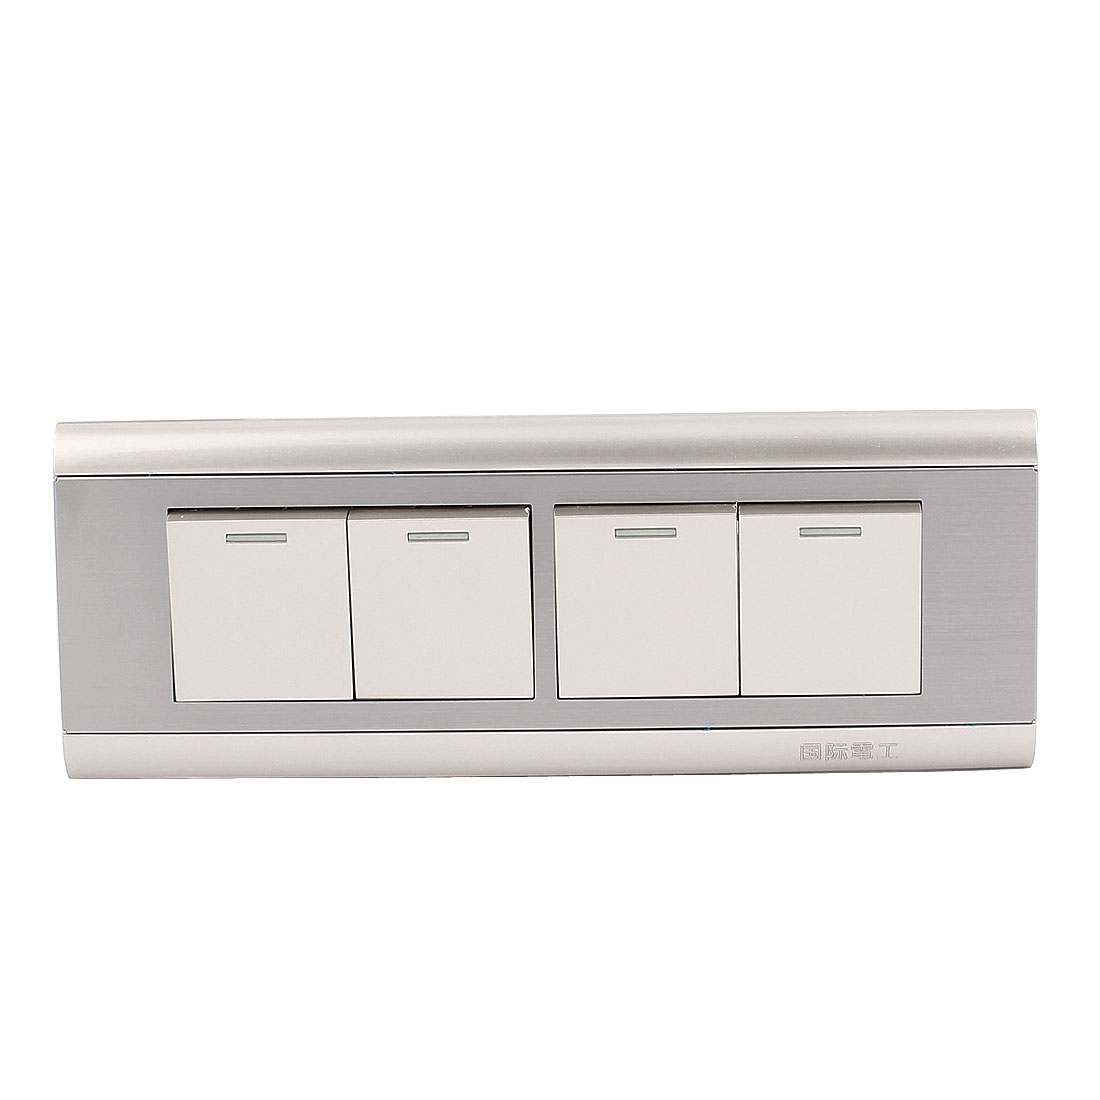 On/Off Press Button 4 Gang Wall Mount Switch Plate AC 250V 10A